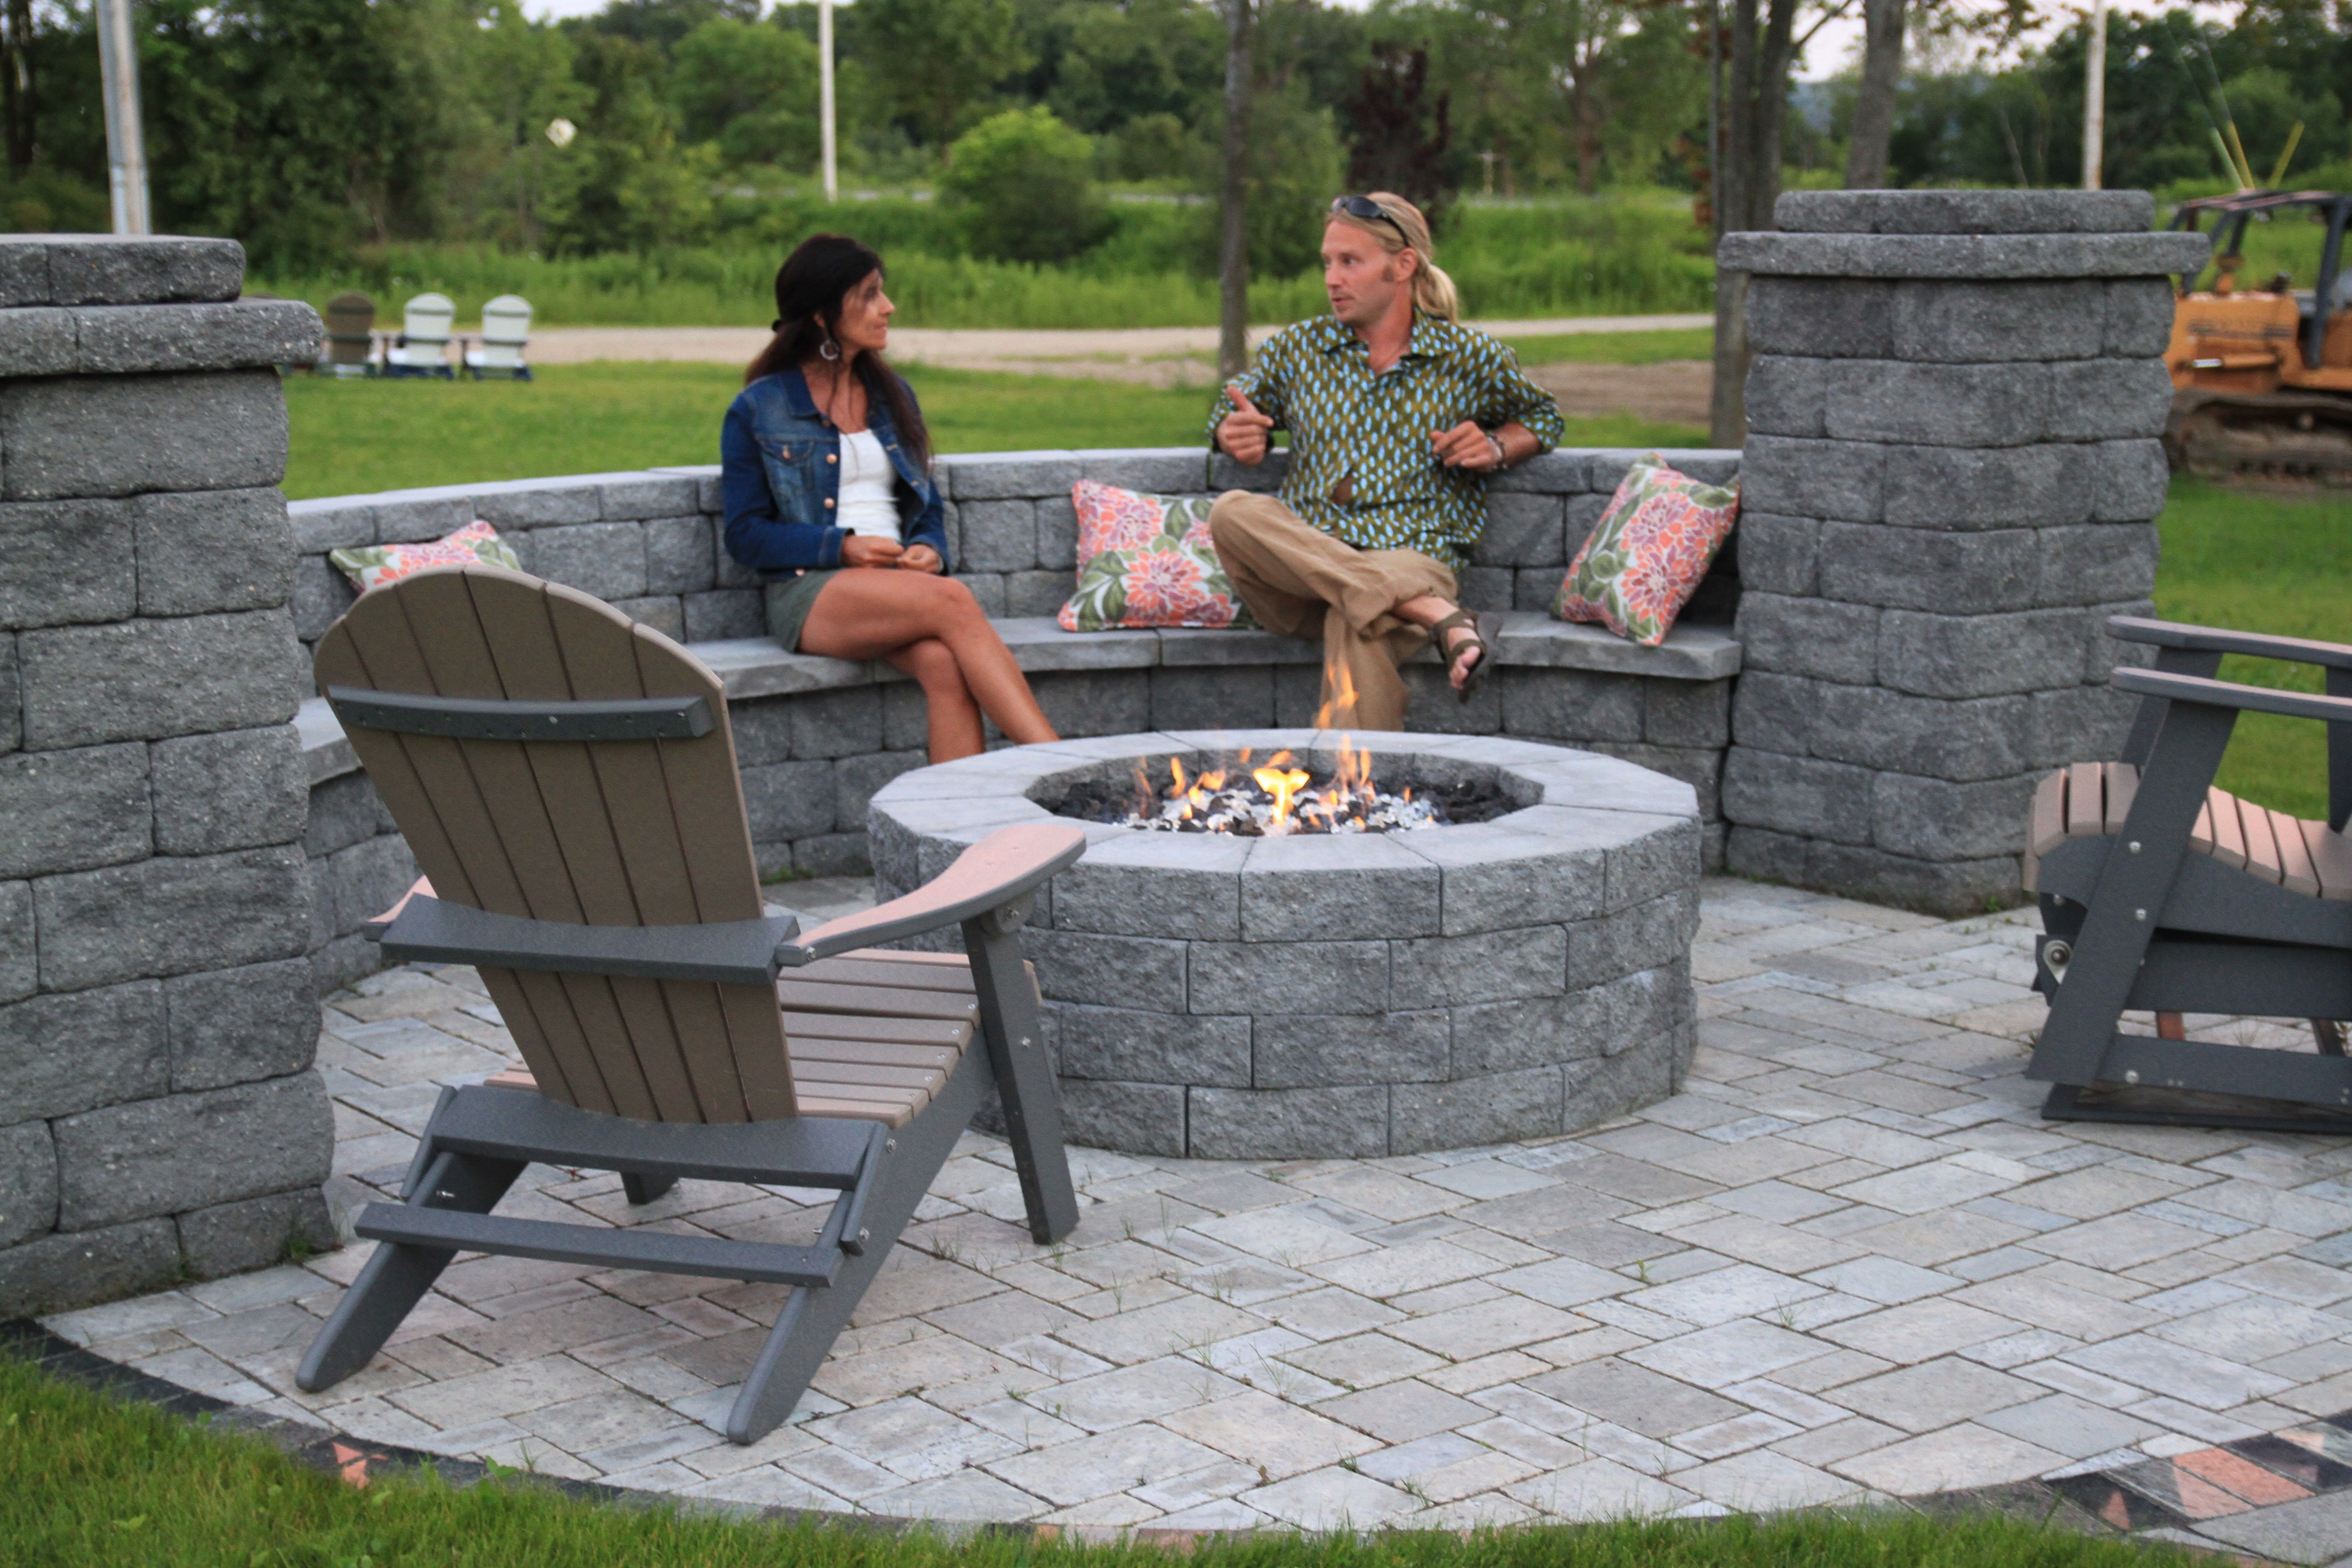 Attrayant Cambridge Pyzique Split Face Fire Pit. Polywood Adirondack Chairs, Sol  Stone Pavers